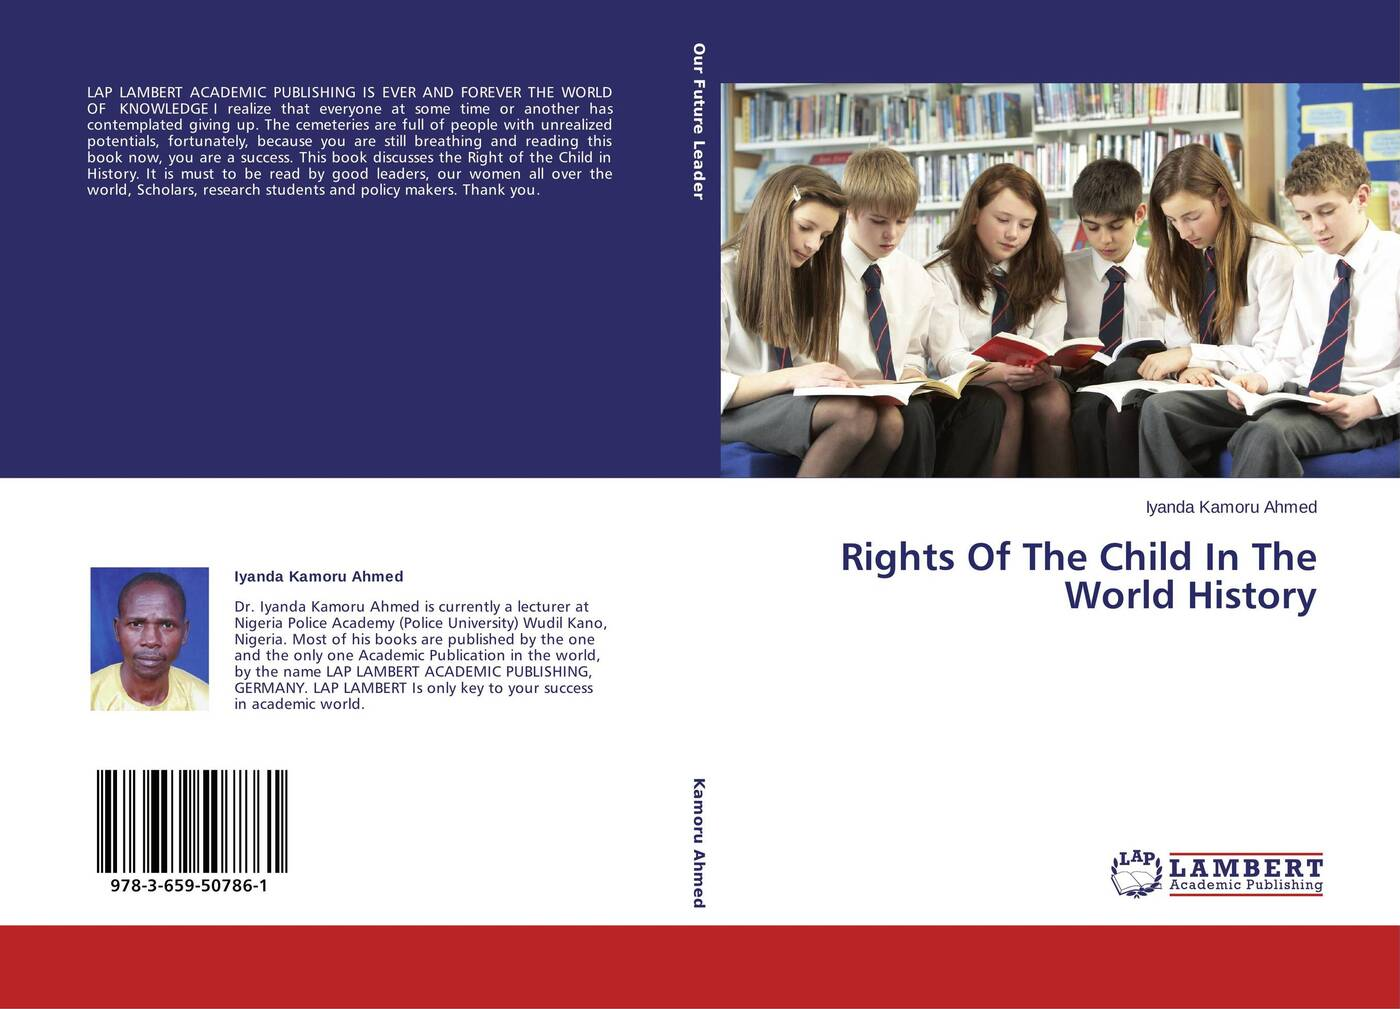 Iyanda Kamoru Ahmed Rights Of The Child In The World History iyanda kamoru ahmed the rudiments of human rights in the world history